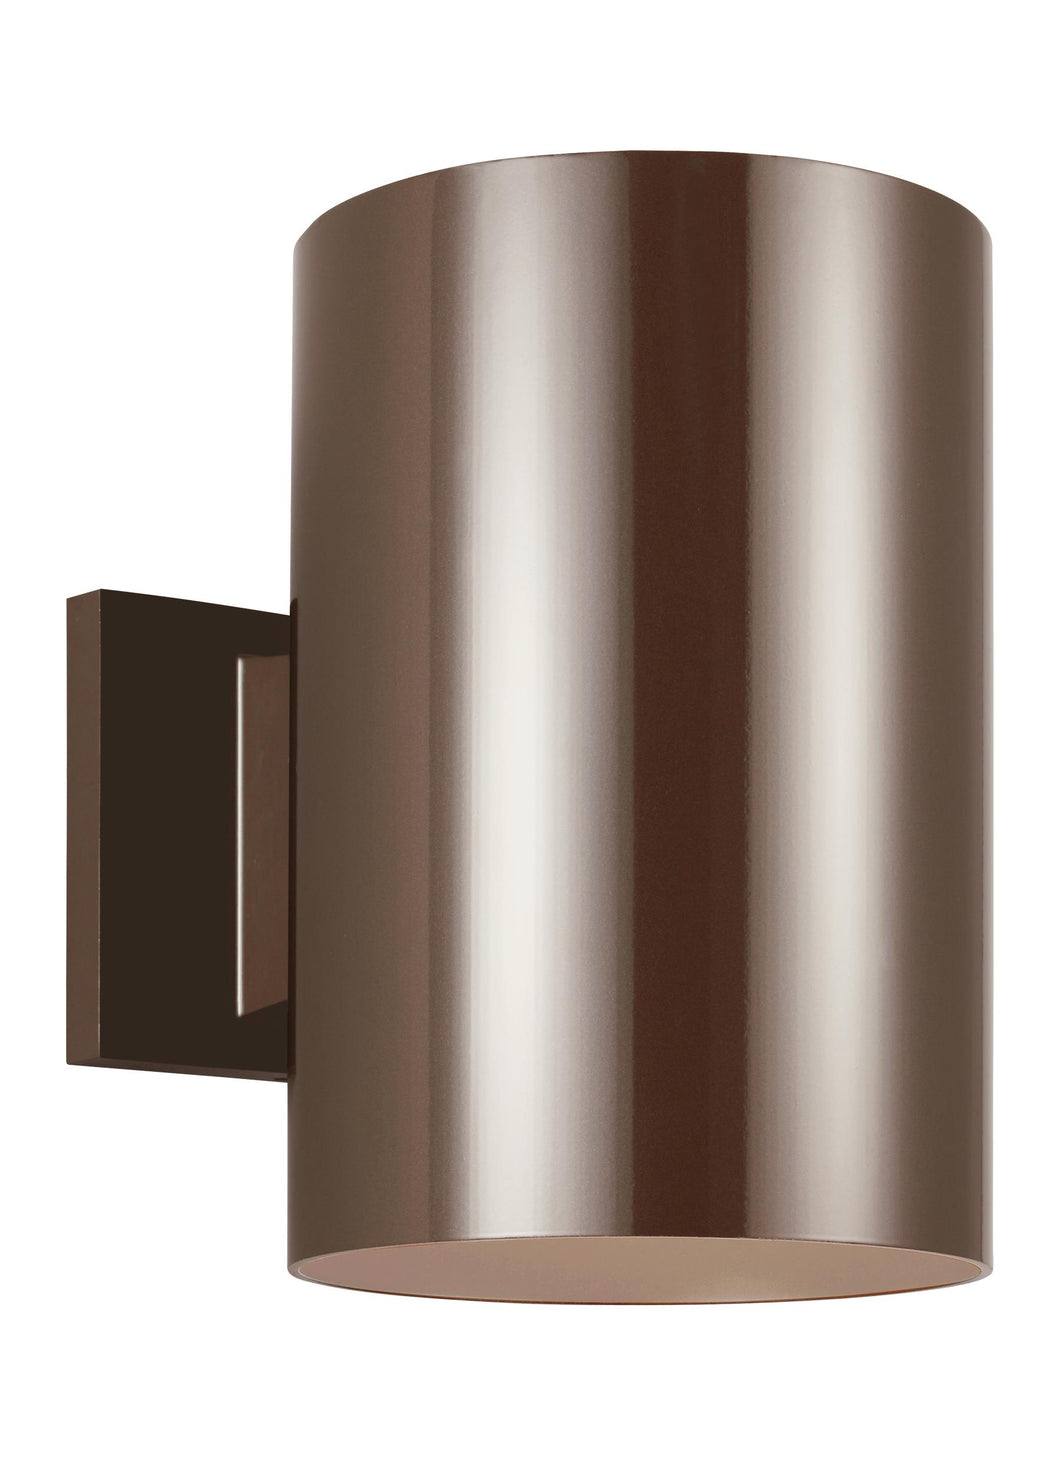 LARGE ONE LIGHT OUTDOOR WALL LANTERN #8313901-10